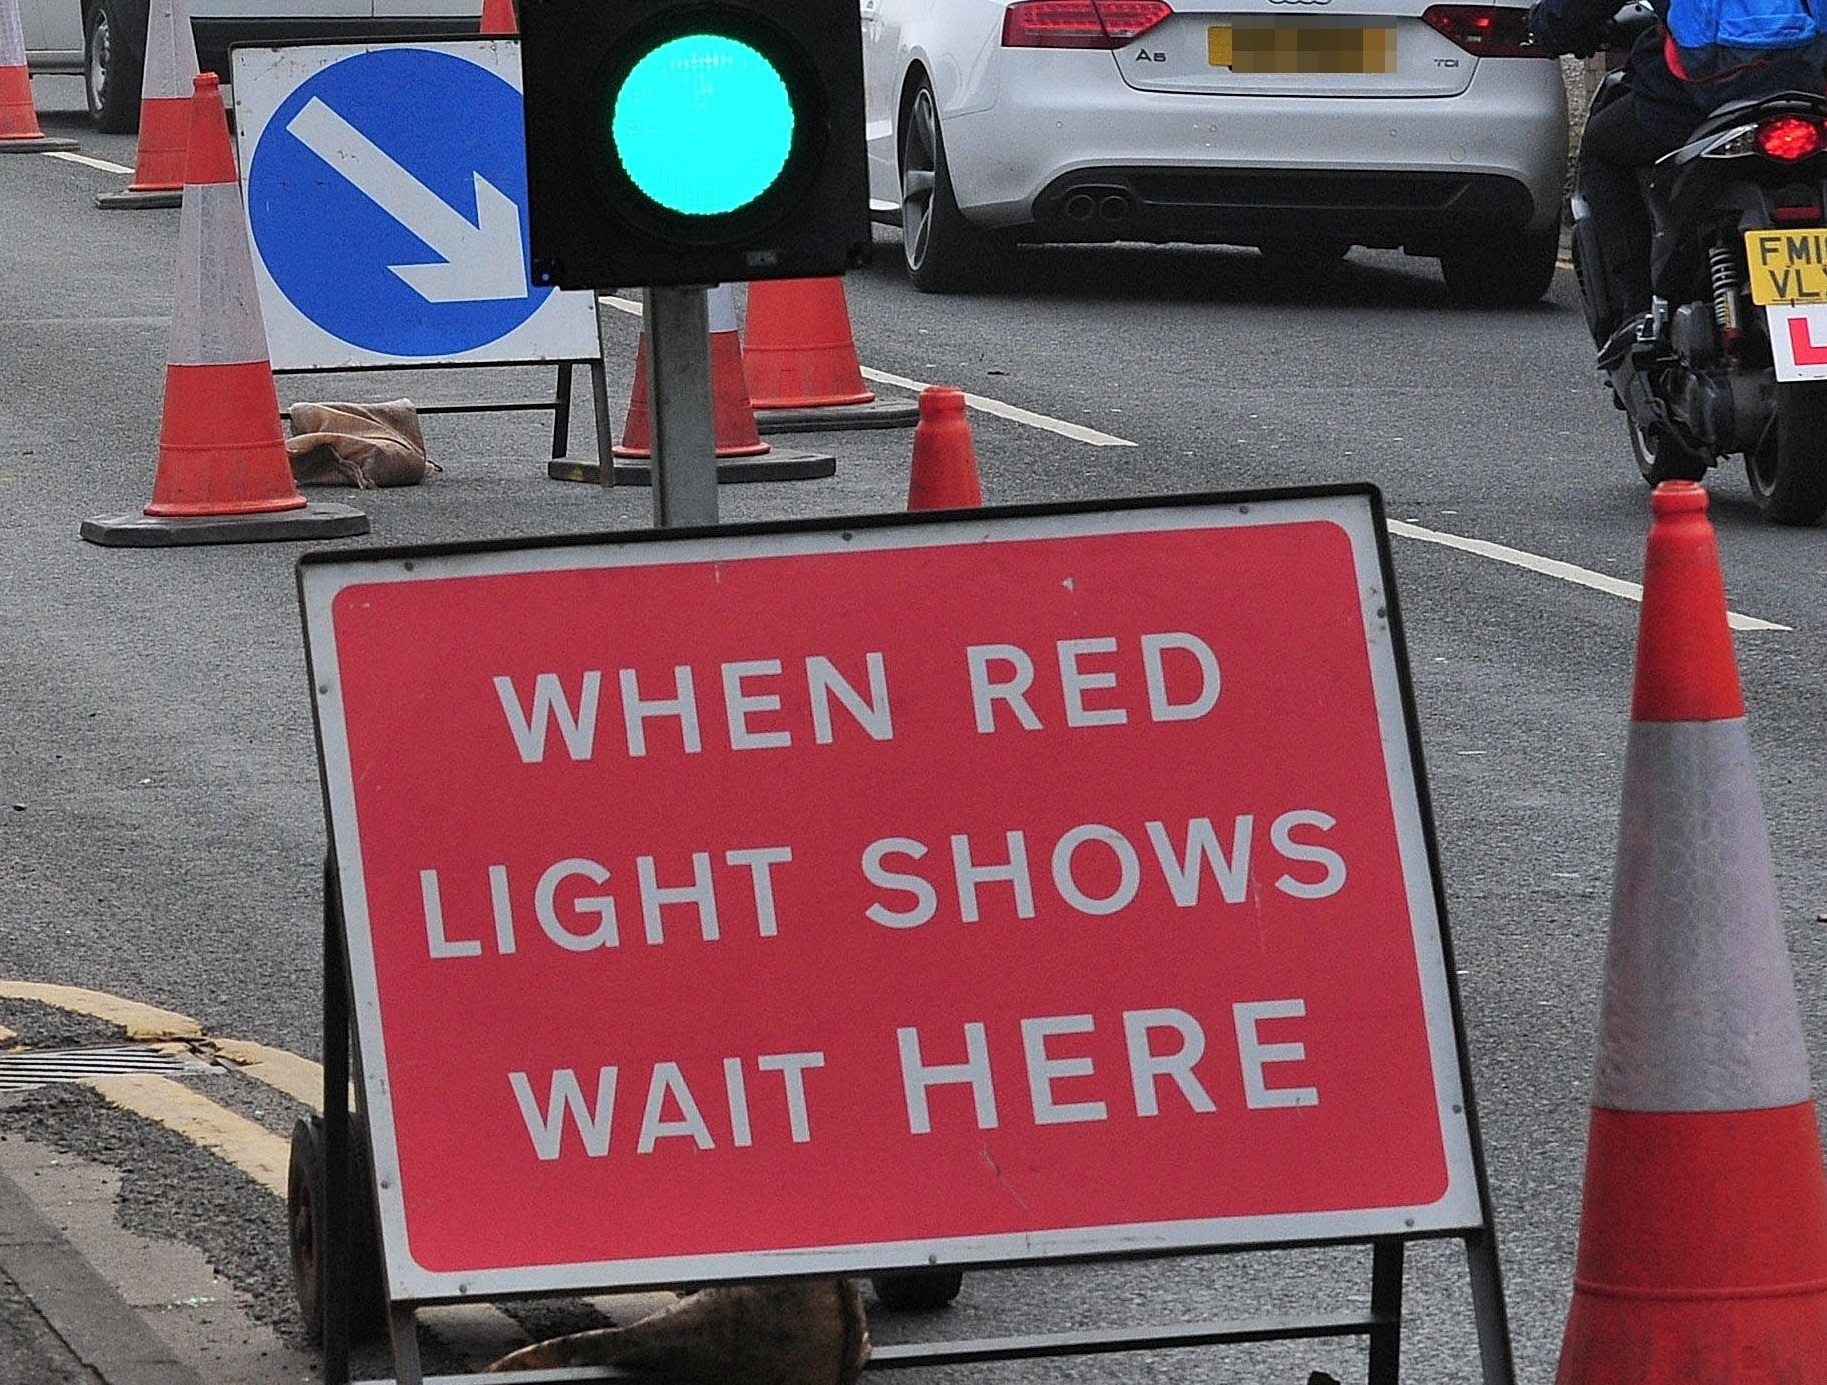 Temporary traffic lights are causing congestion this morning